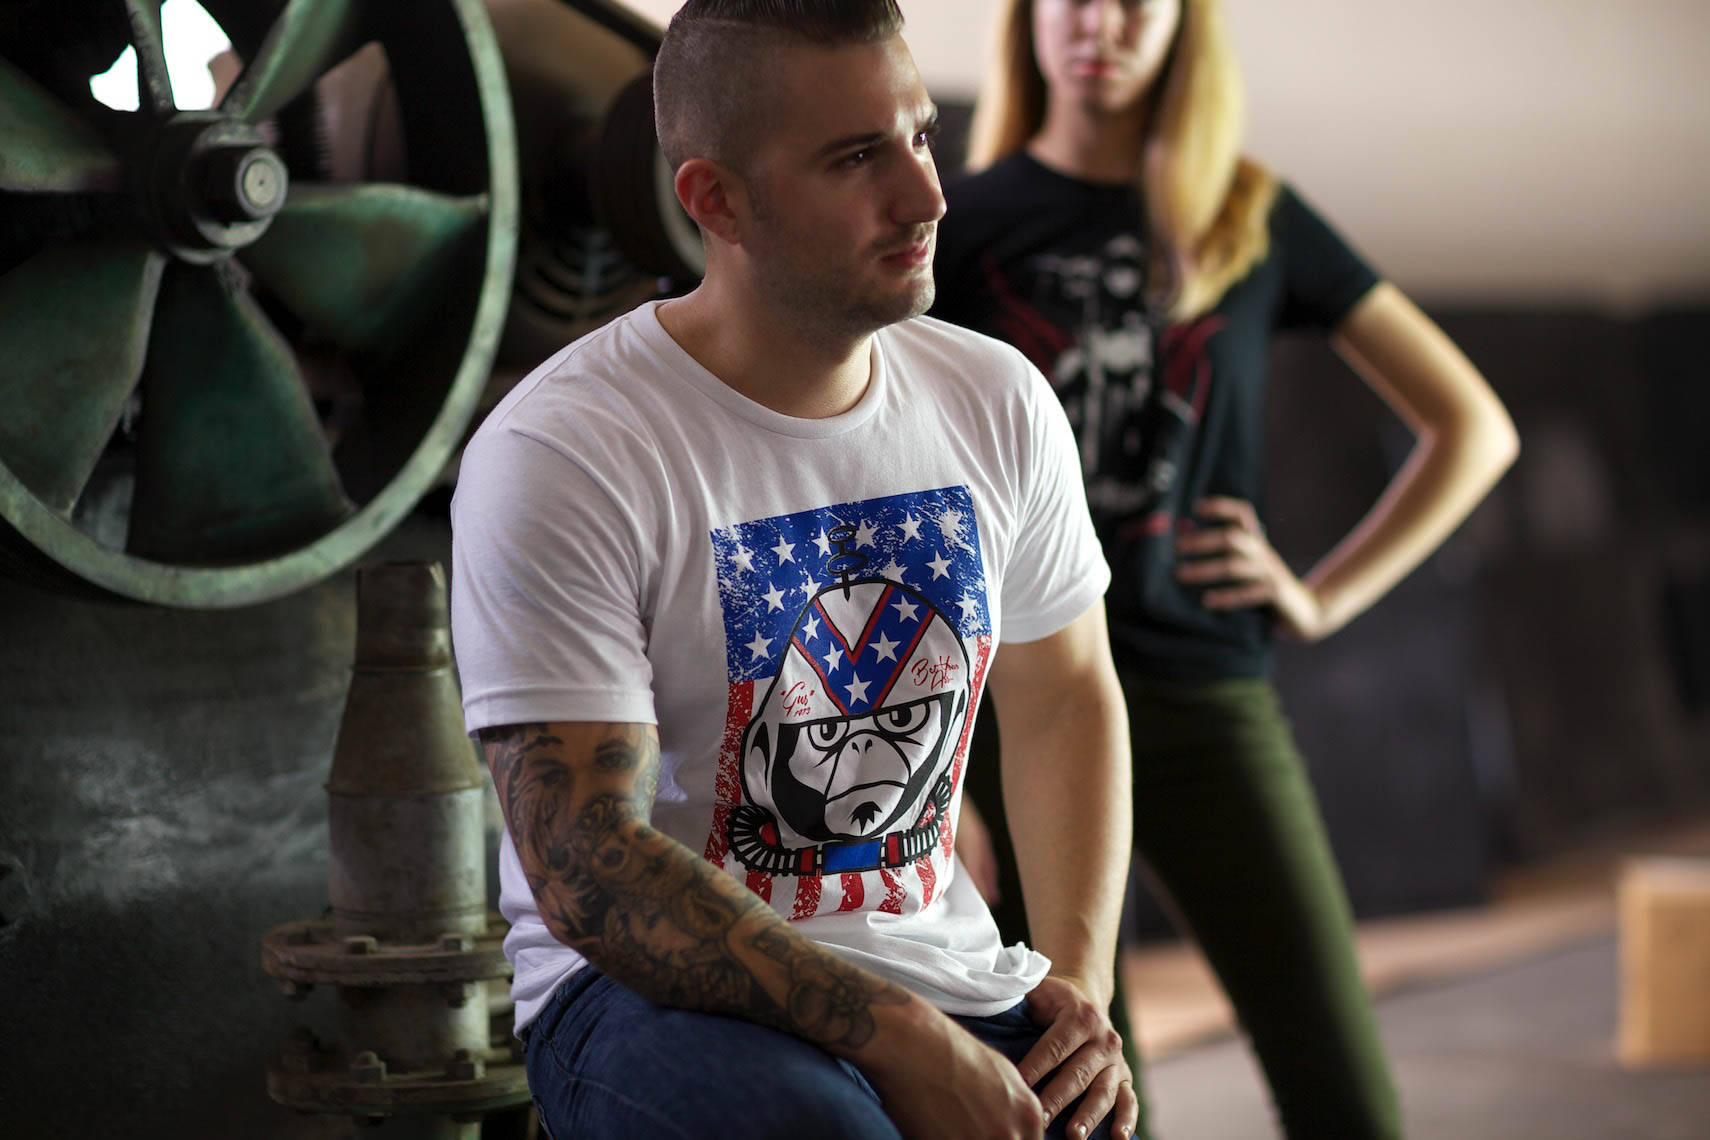 test-pilot-wear-shirts-jason-risner-photography-9083